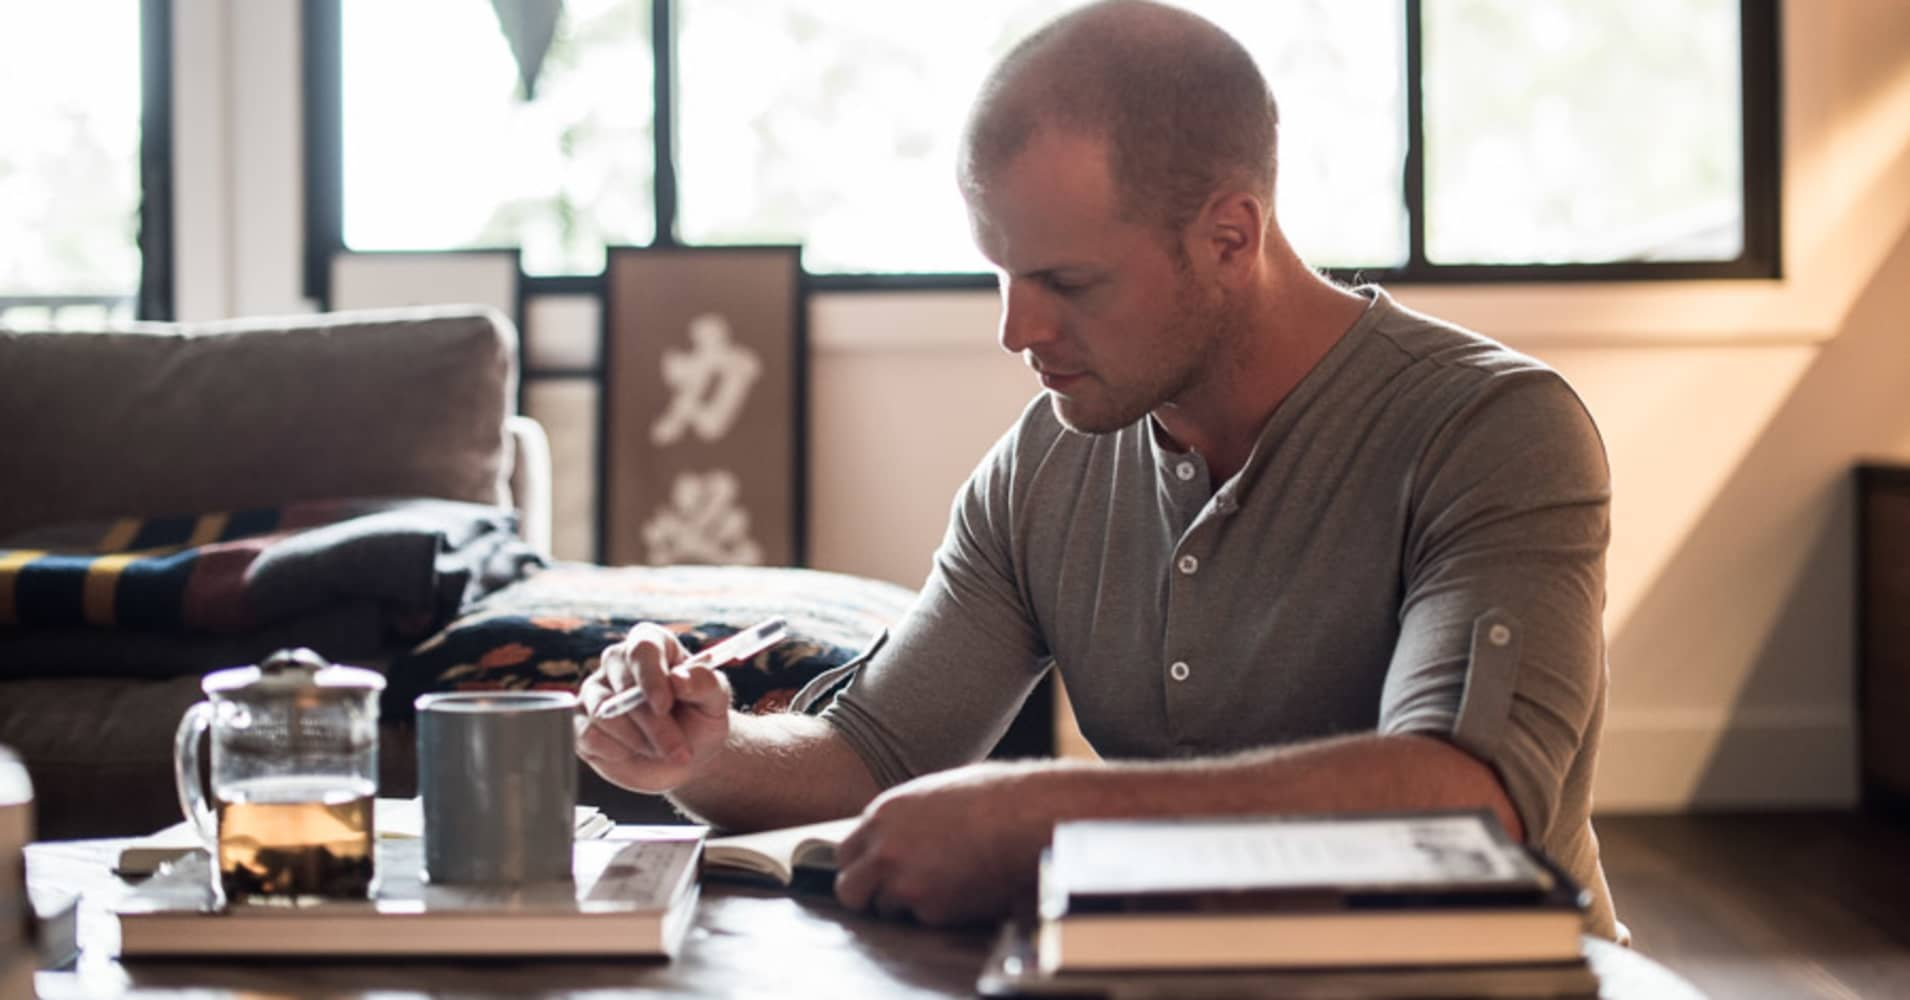 Tim Ferriss says this simple 3-step exercise can help you overcome your fears—and it only takes 30 minutes